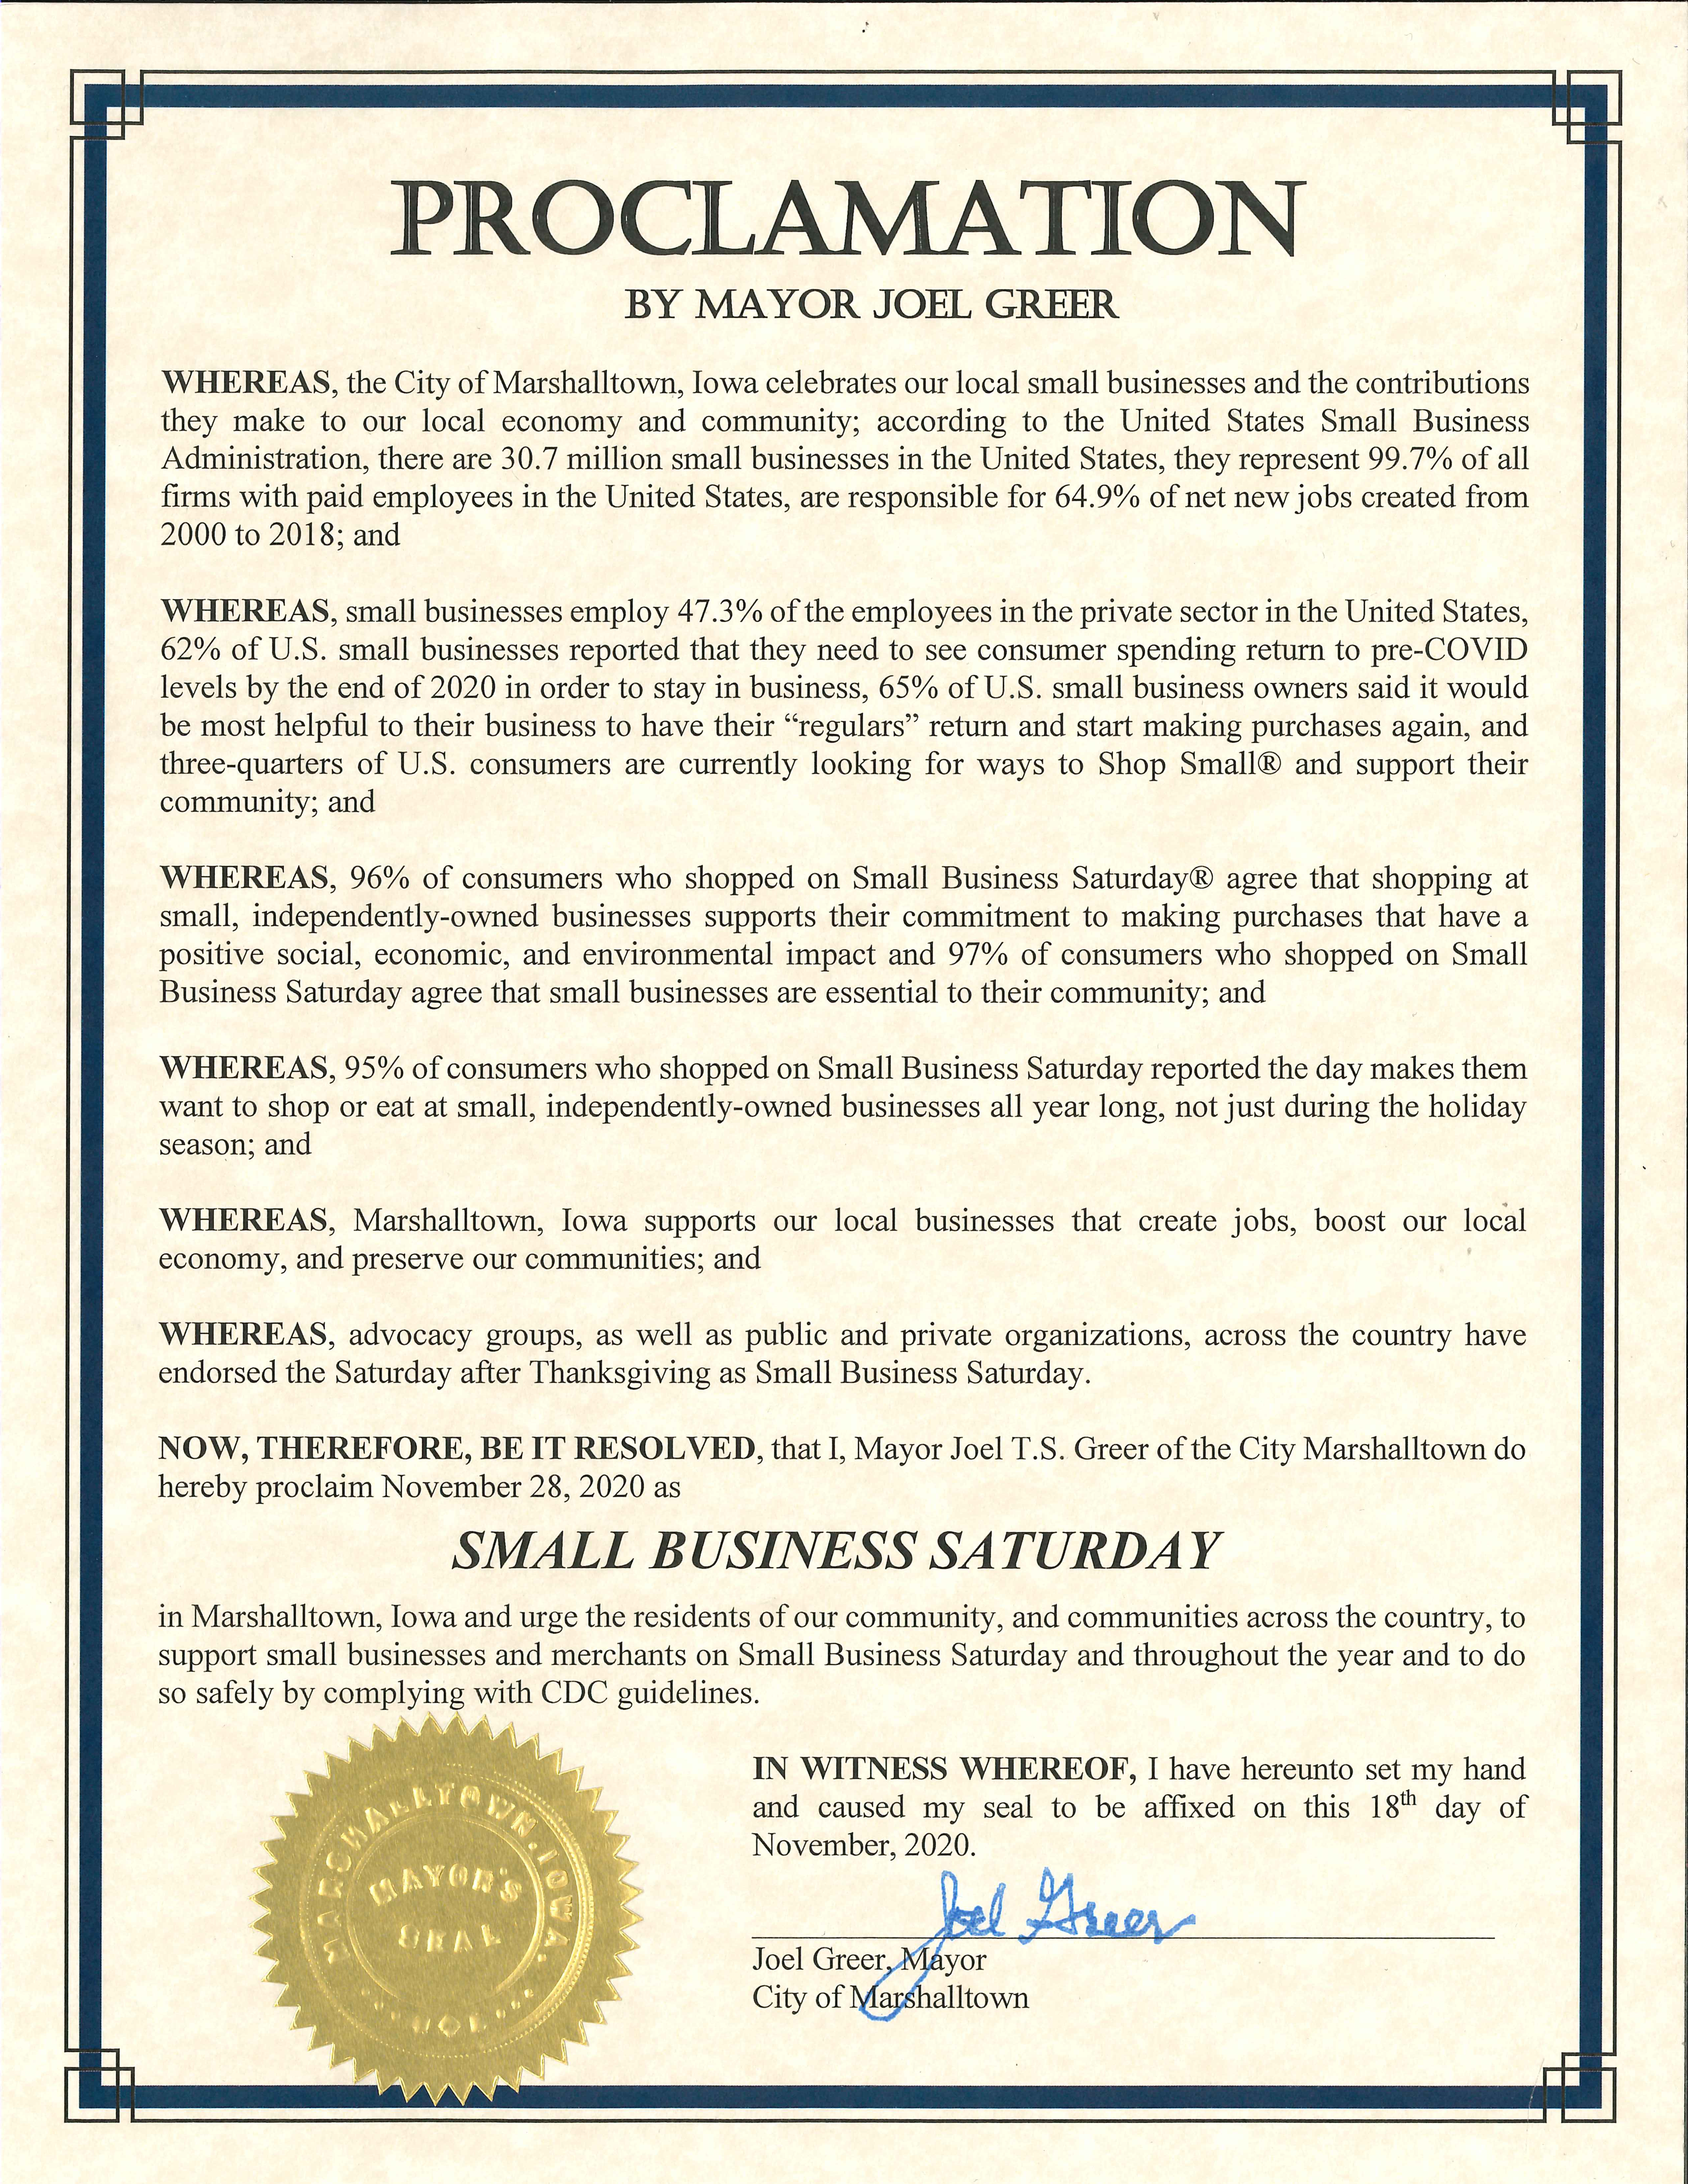 2020-11-28 Small Business Saturday